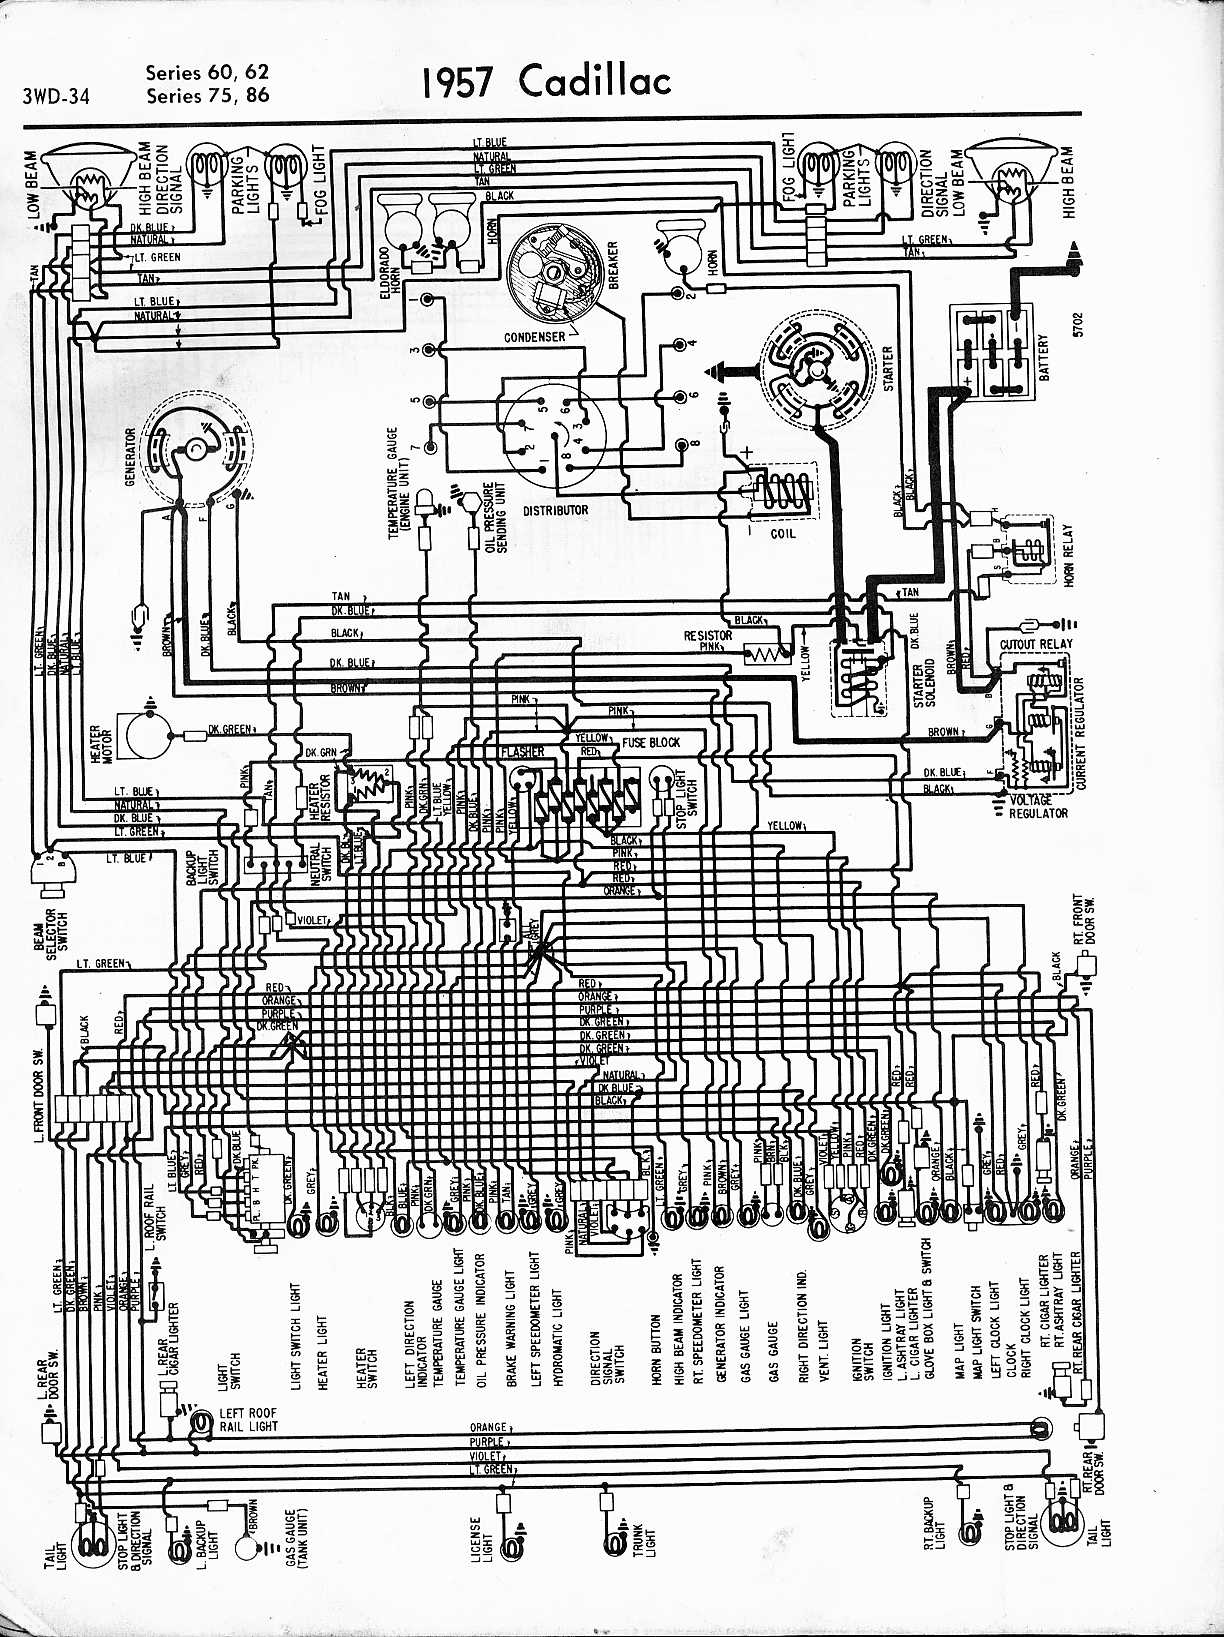 cadillac wiring diagrams 1957 1965 rh oldcarmanualproject com wiring diagram cadillac 1955 wiring diagram cadillac 1955